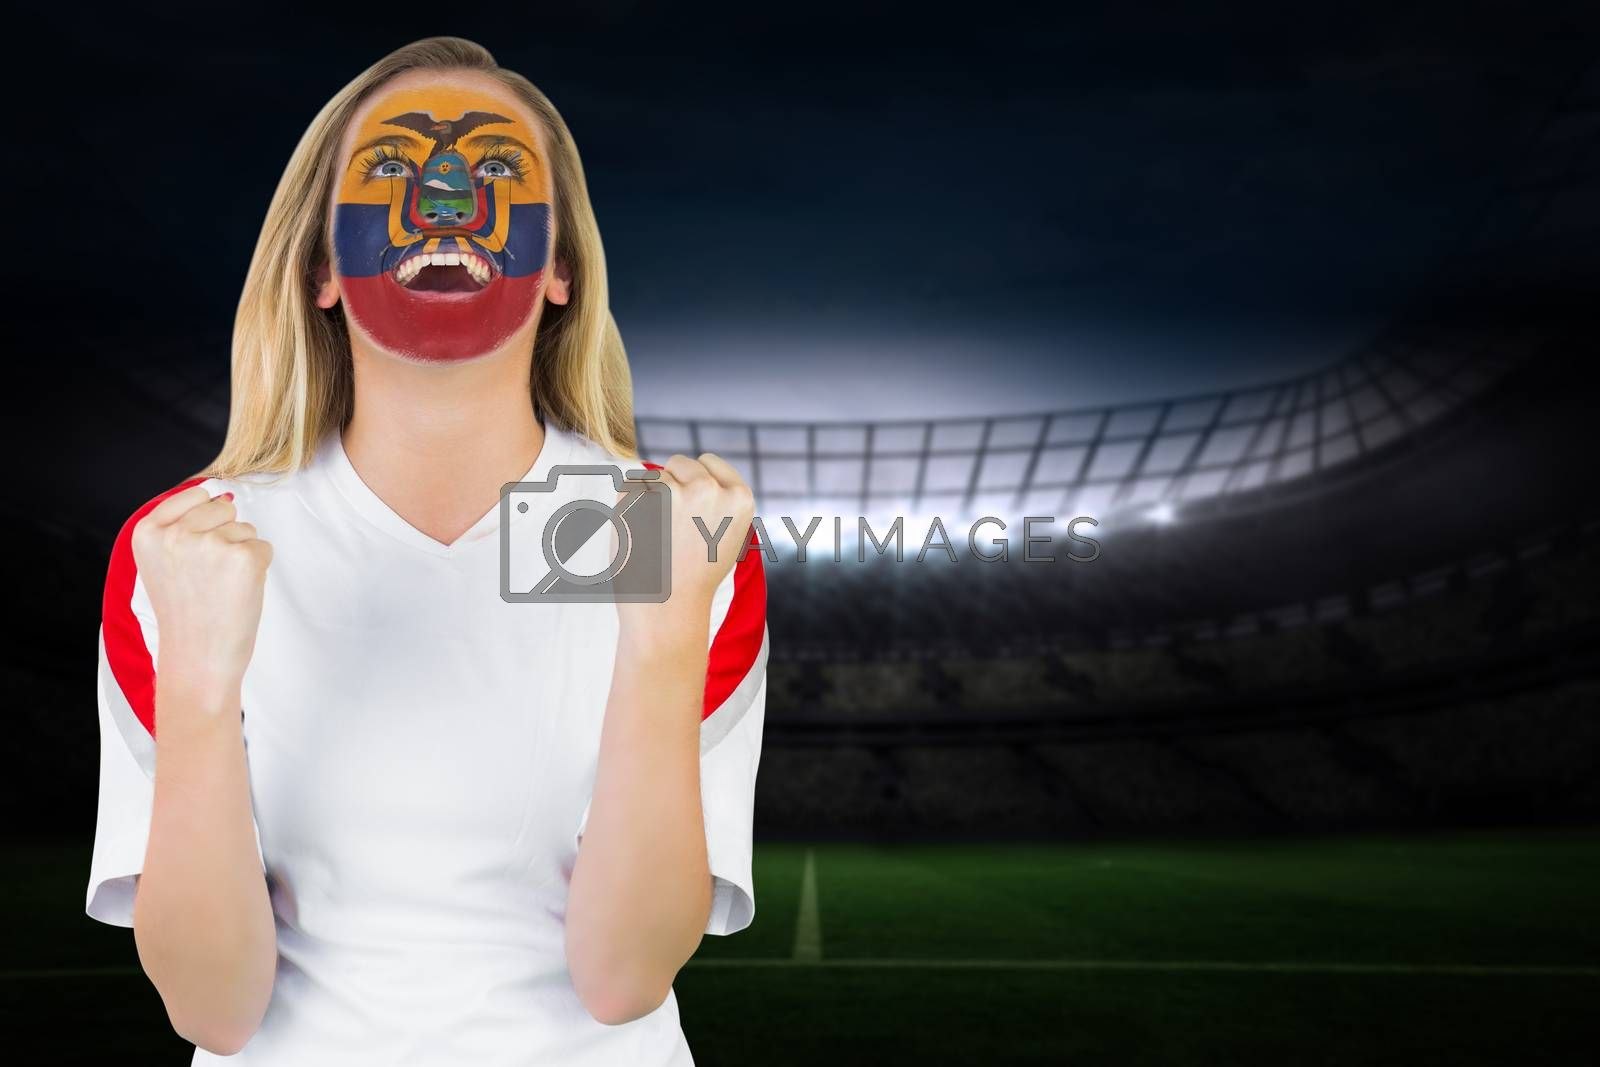 Excited ecuador fan in face paint cheering by Wavebreakmedia